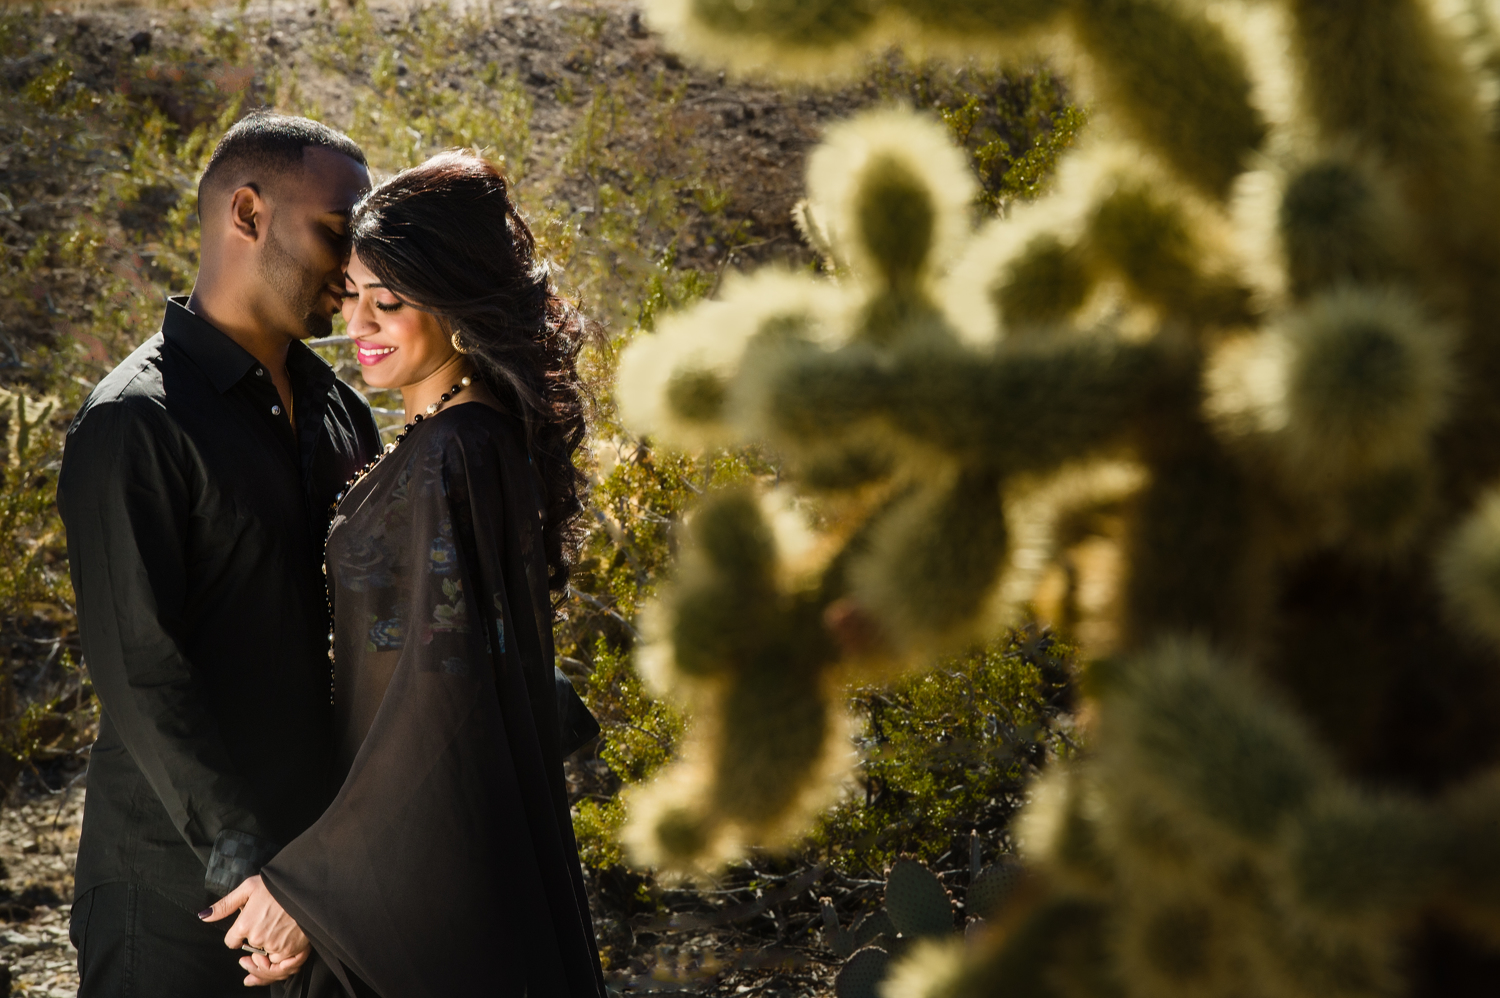 Las-Vegas-Engagement-Session-0005.JPG